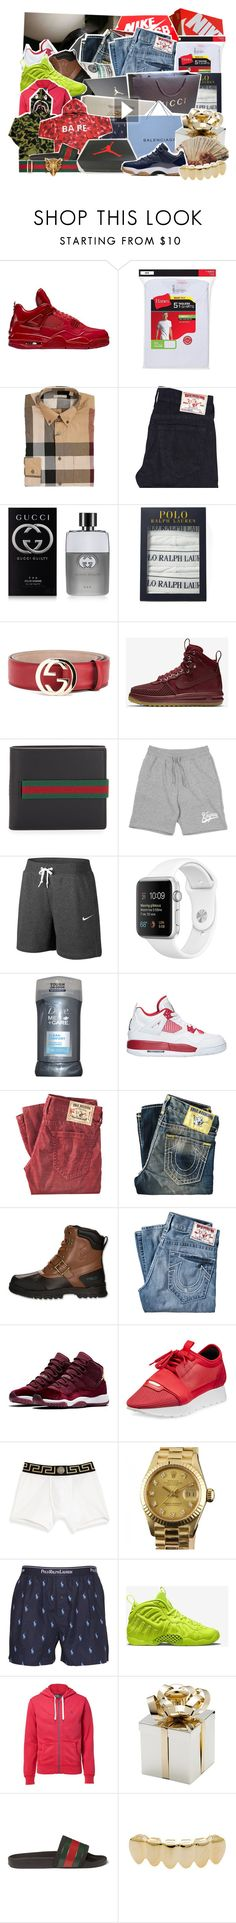 """""""im late but merry christmas ."""" by d-ocumentary ❤ liked on Polyvore featuring Hanes, Burberry, True Religion, Gucci, NIKE, Dove, Balenciaga, Versace, Rolex and Polo Ralph Lauren"""